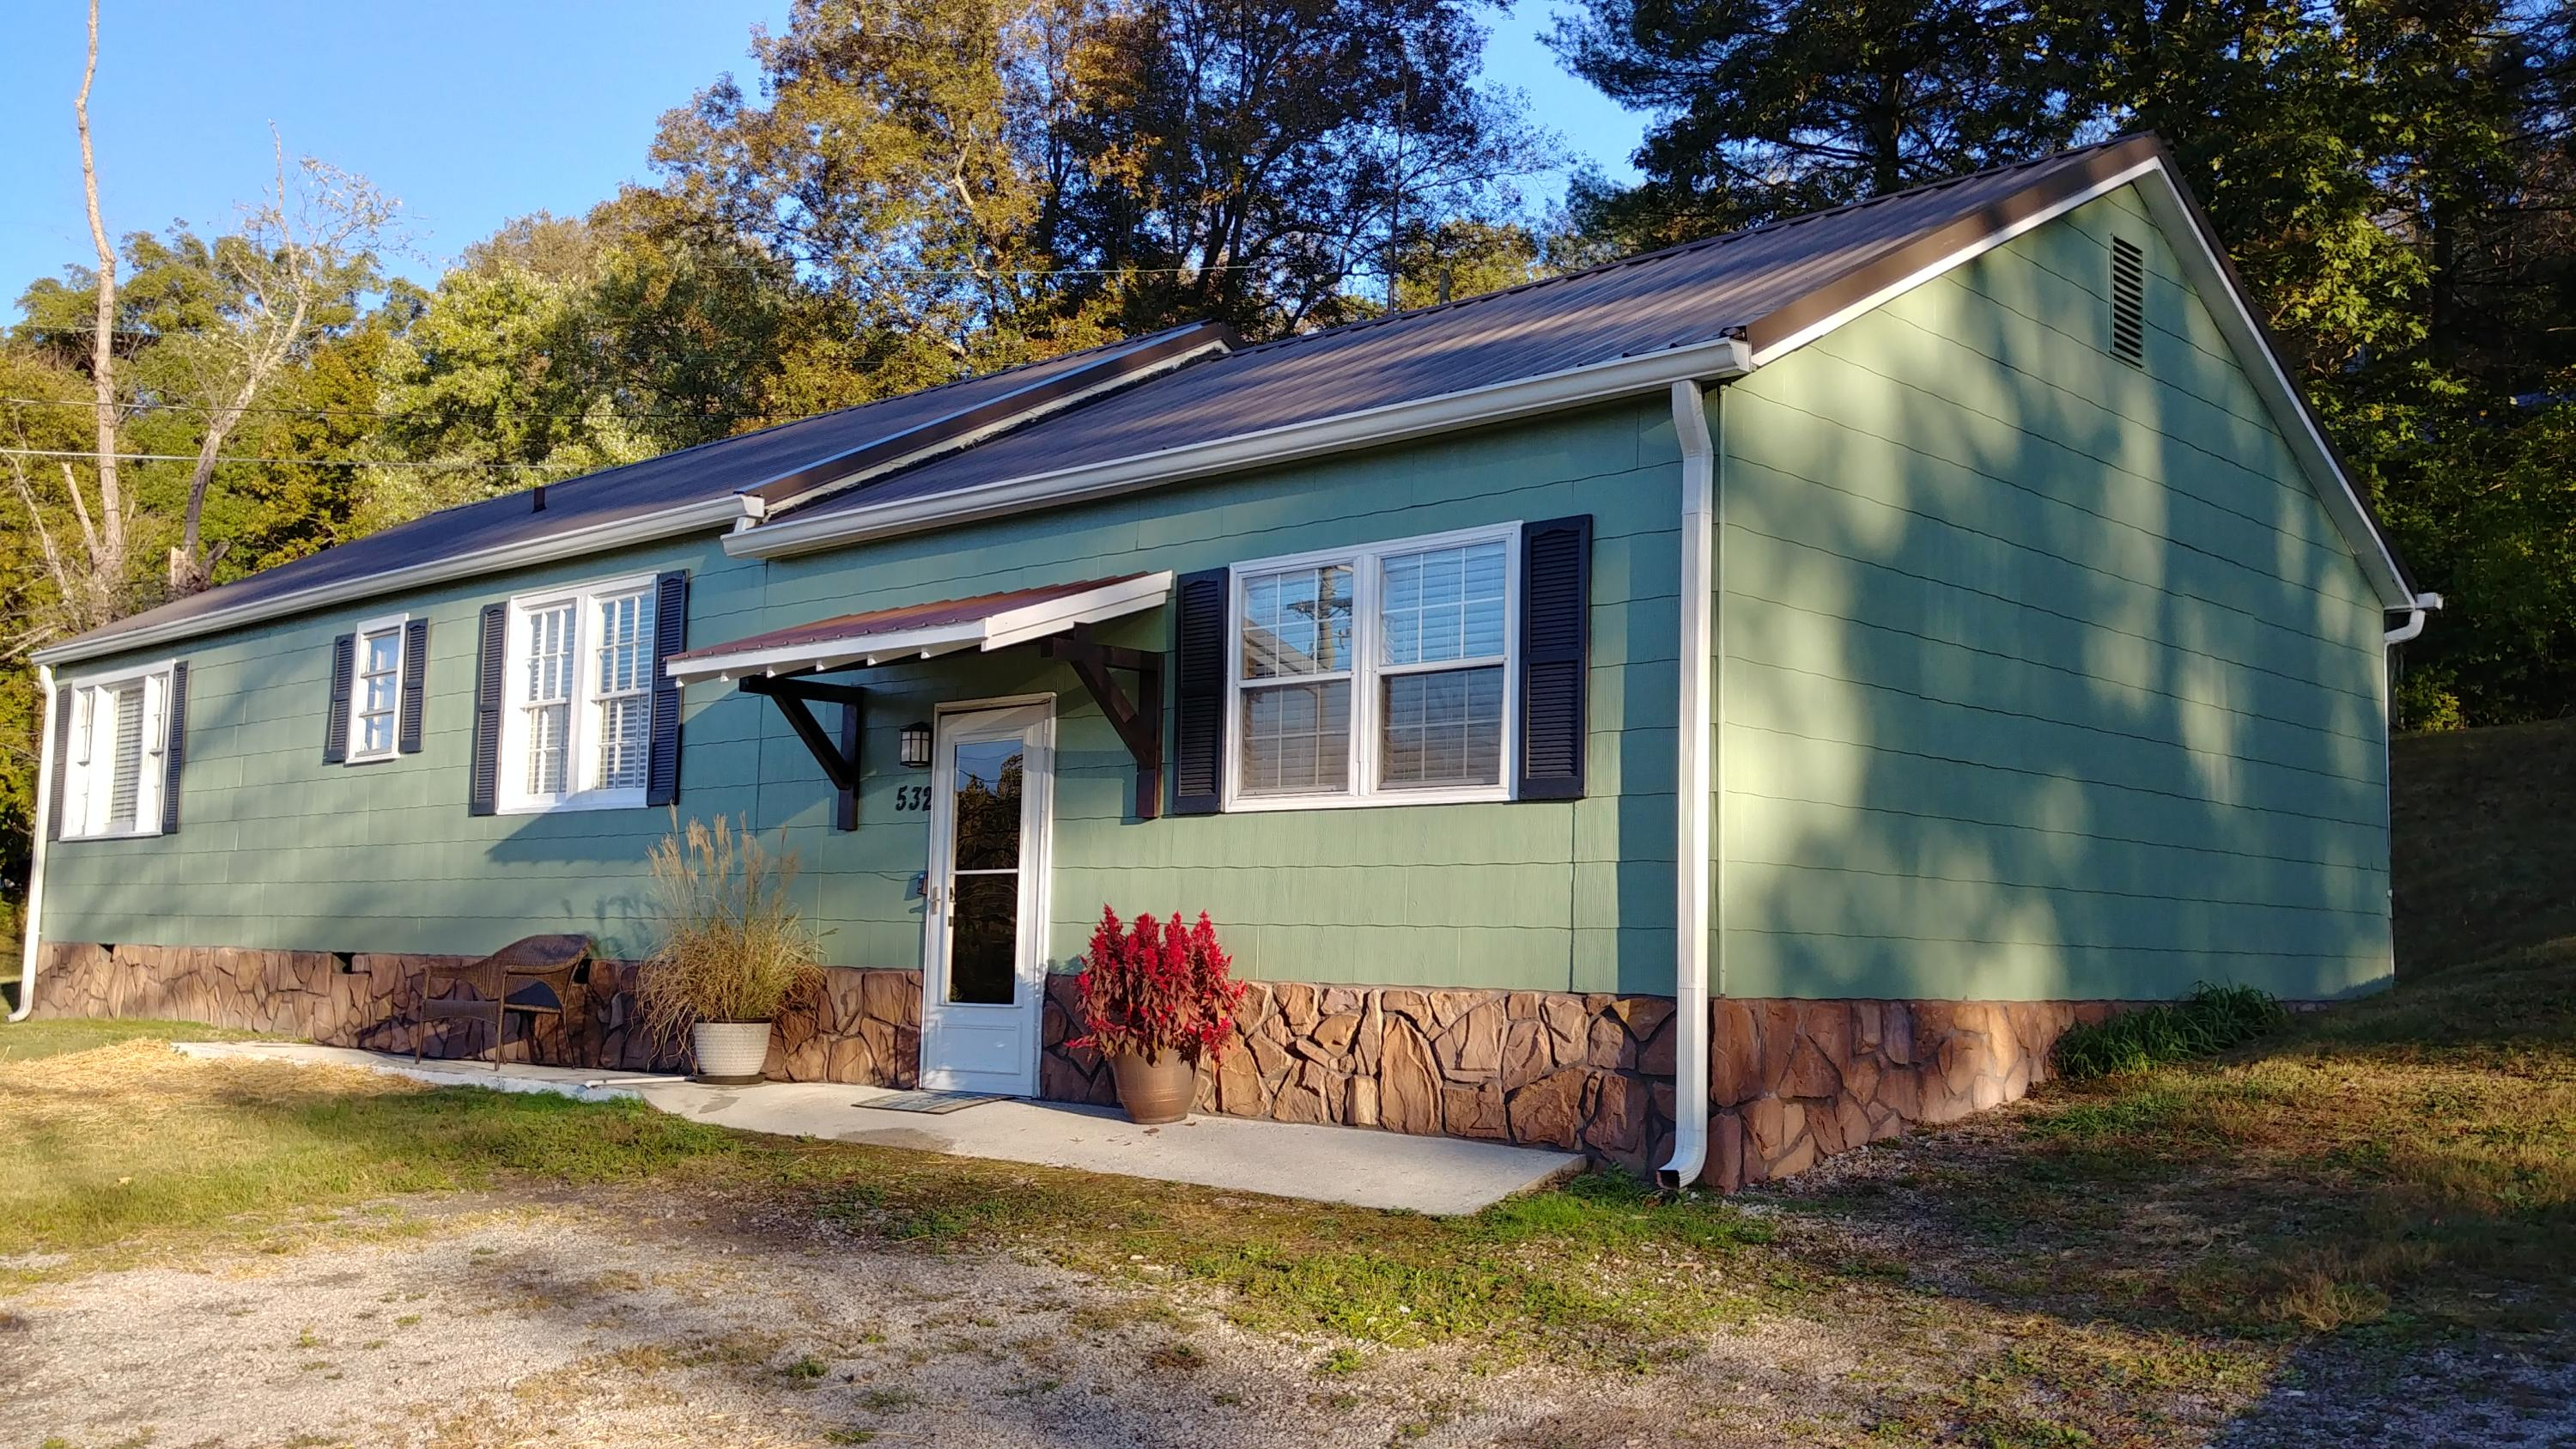 532 Kimberlin Heights Rd- Knoxville- Tennessee 37920, 3 Bedrooms Bedrooms, ,1 BathroomBathrooms,Single Family,For Sale,Kimberlin Heights,1095403